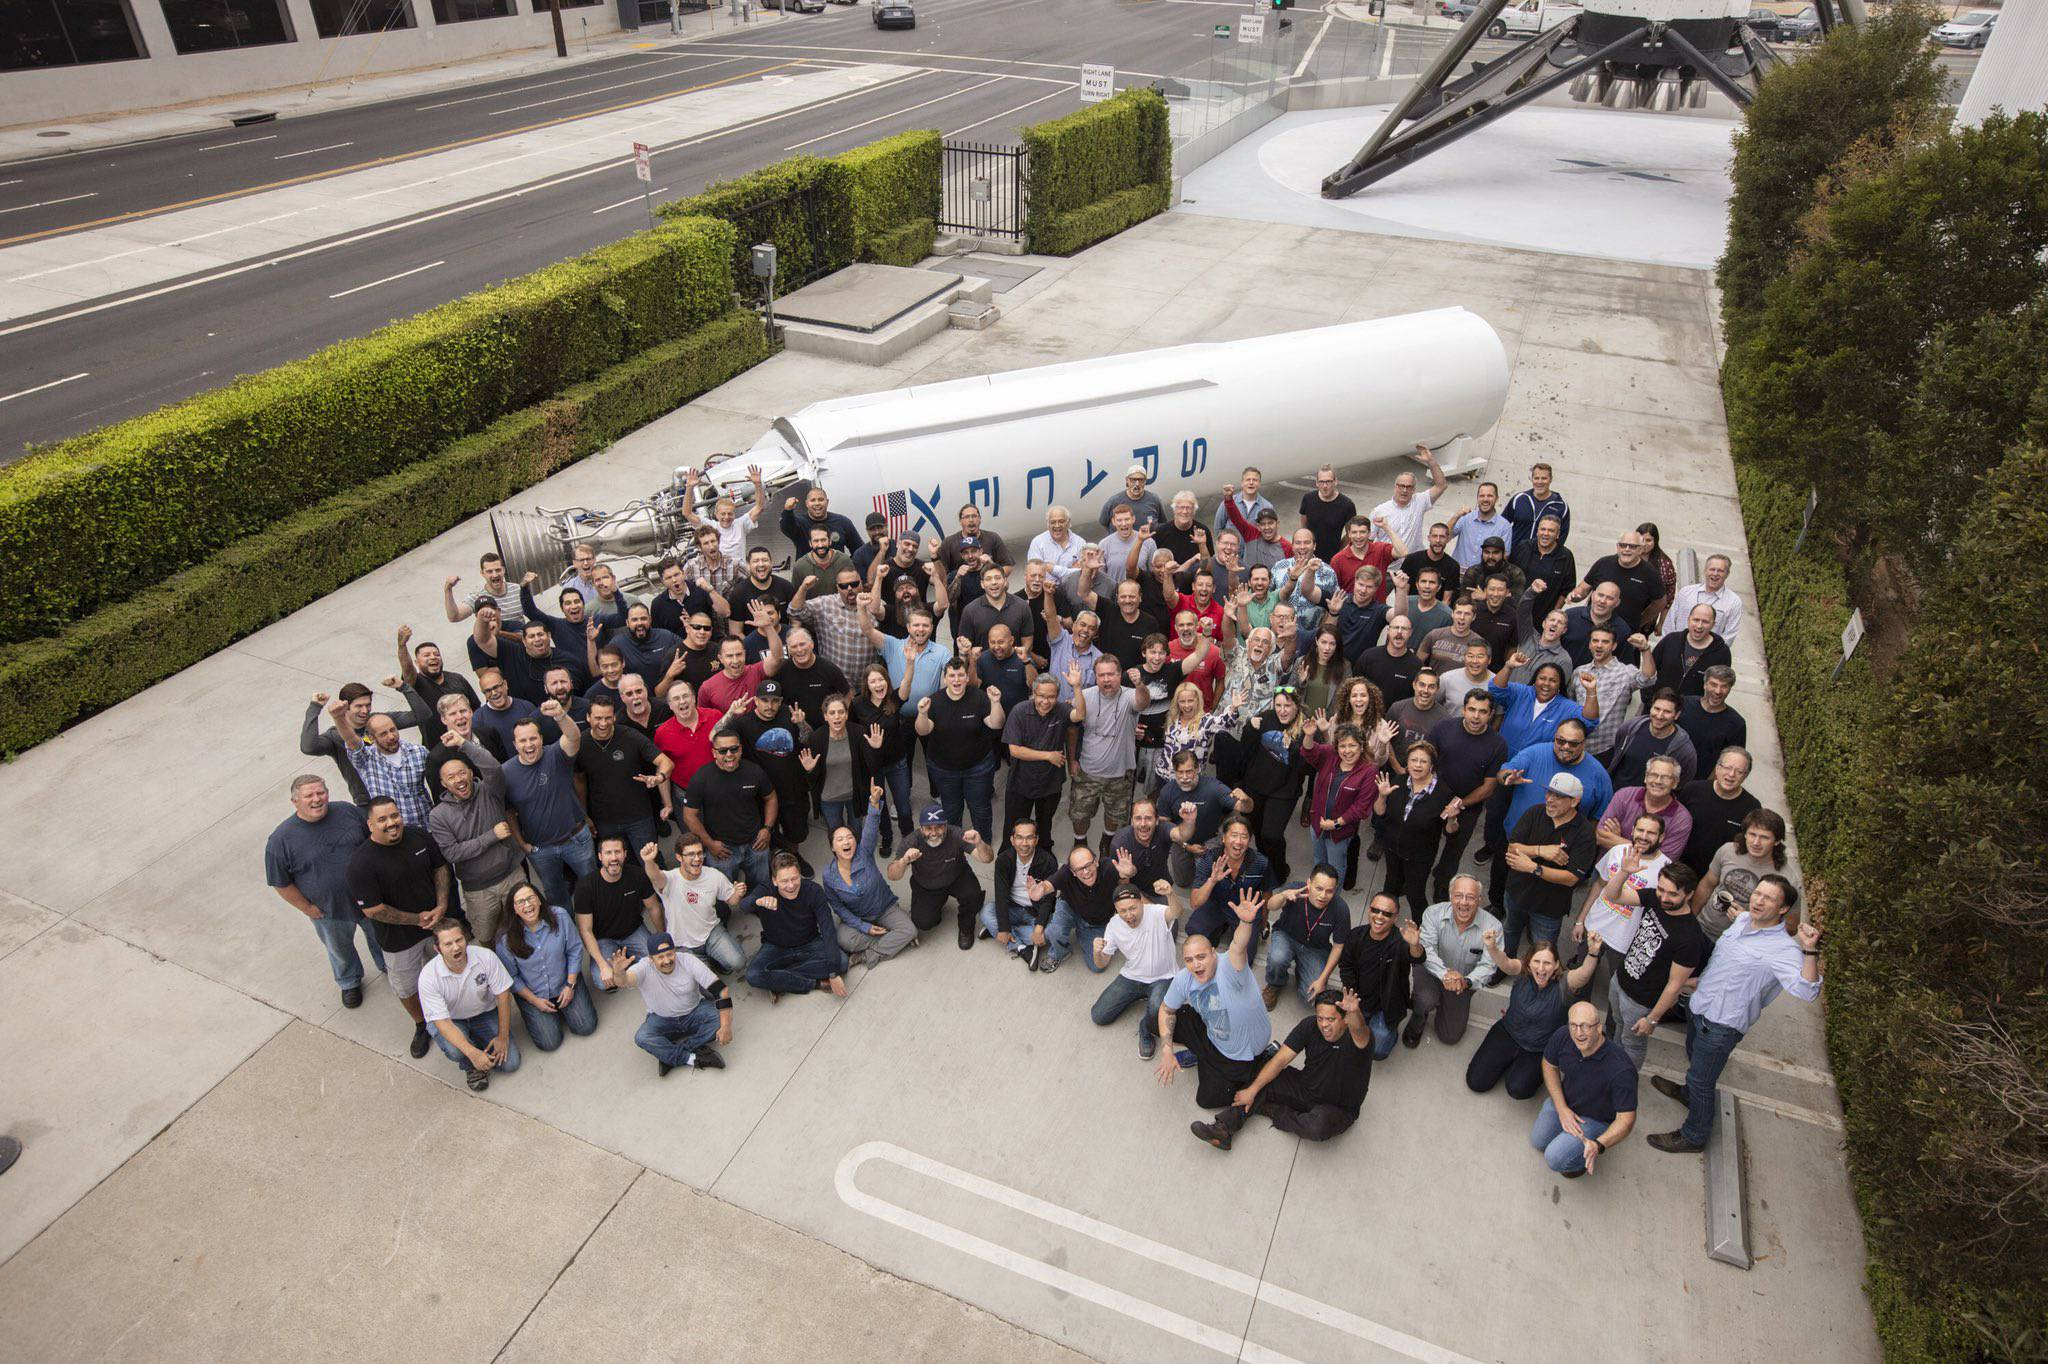 Falcon 1 Flight 4 10 year anniversary (SpaceX) 1